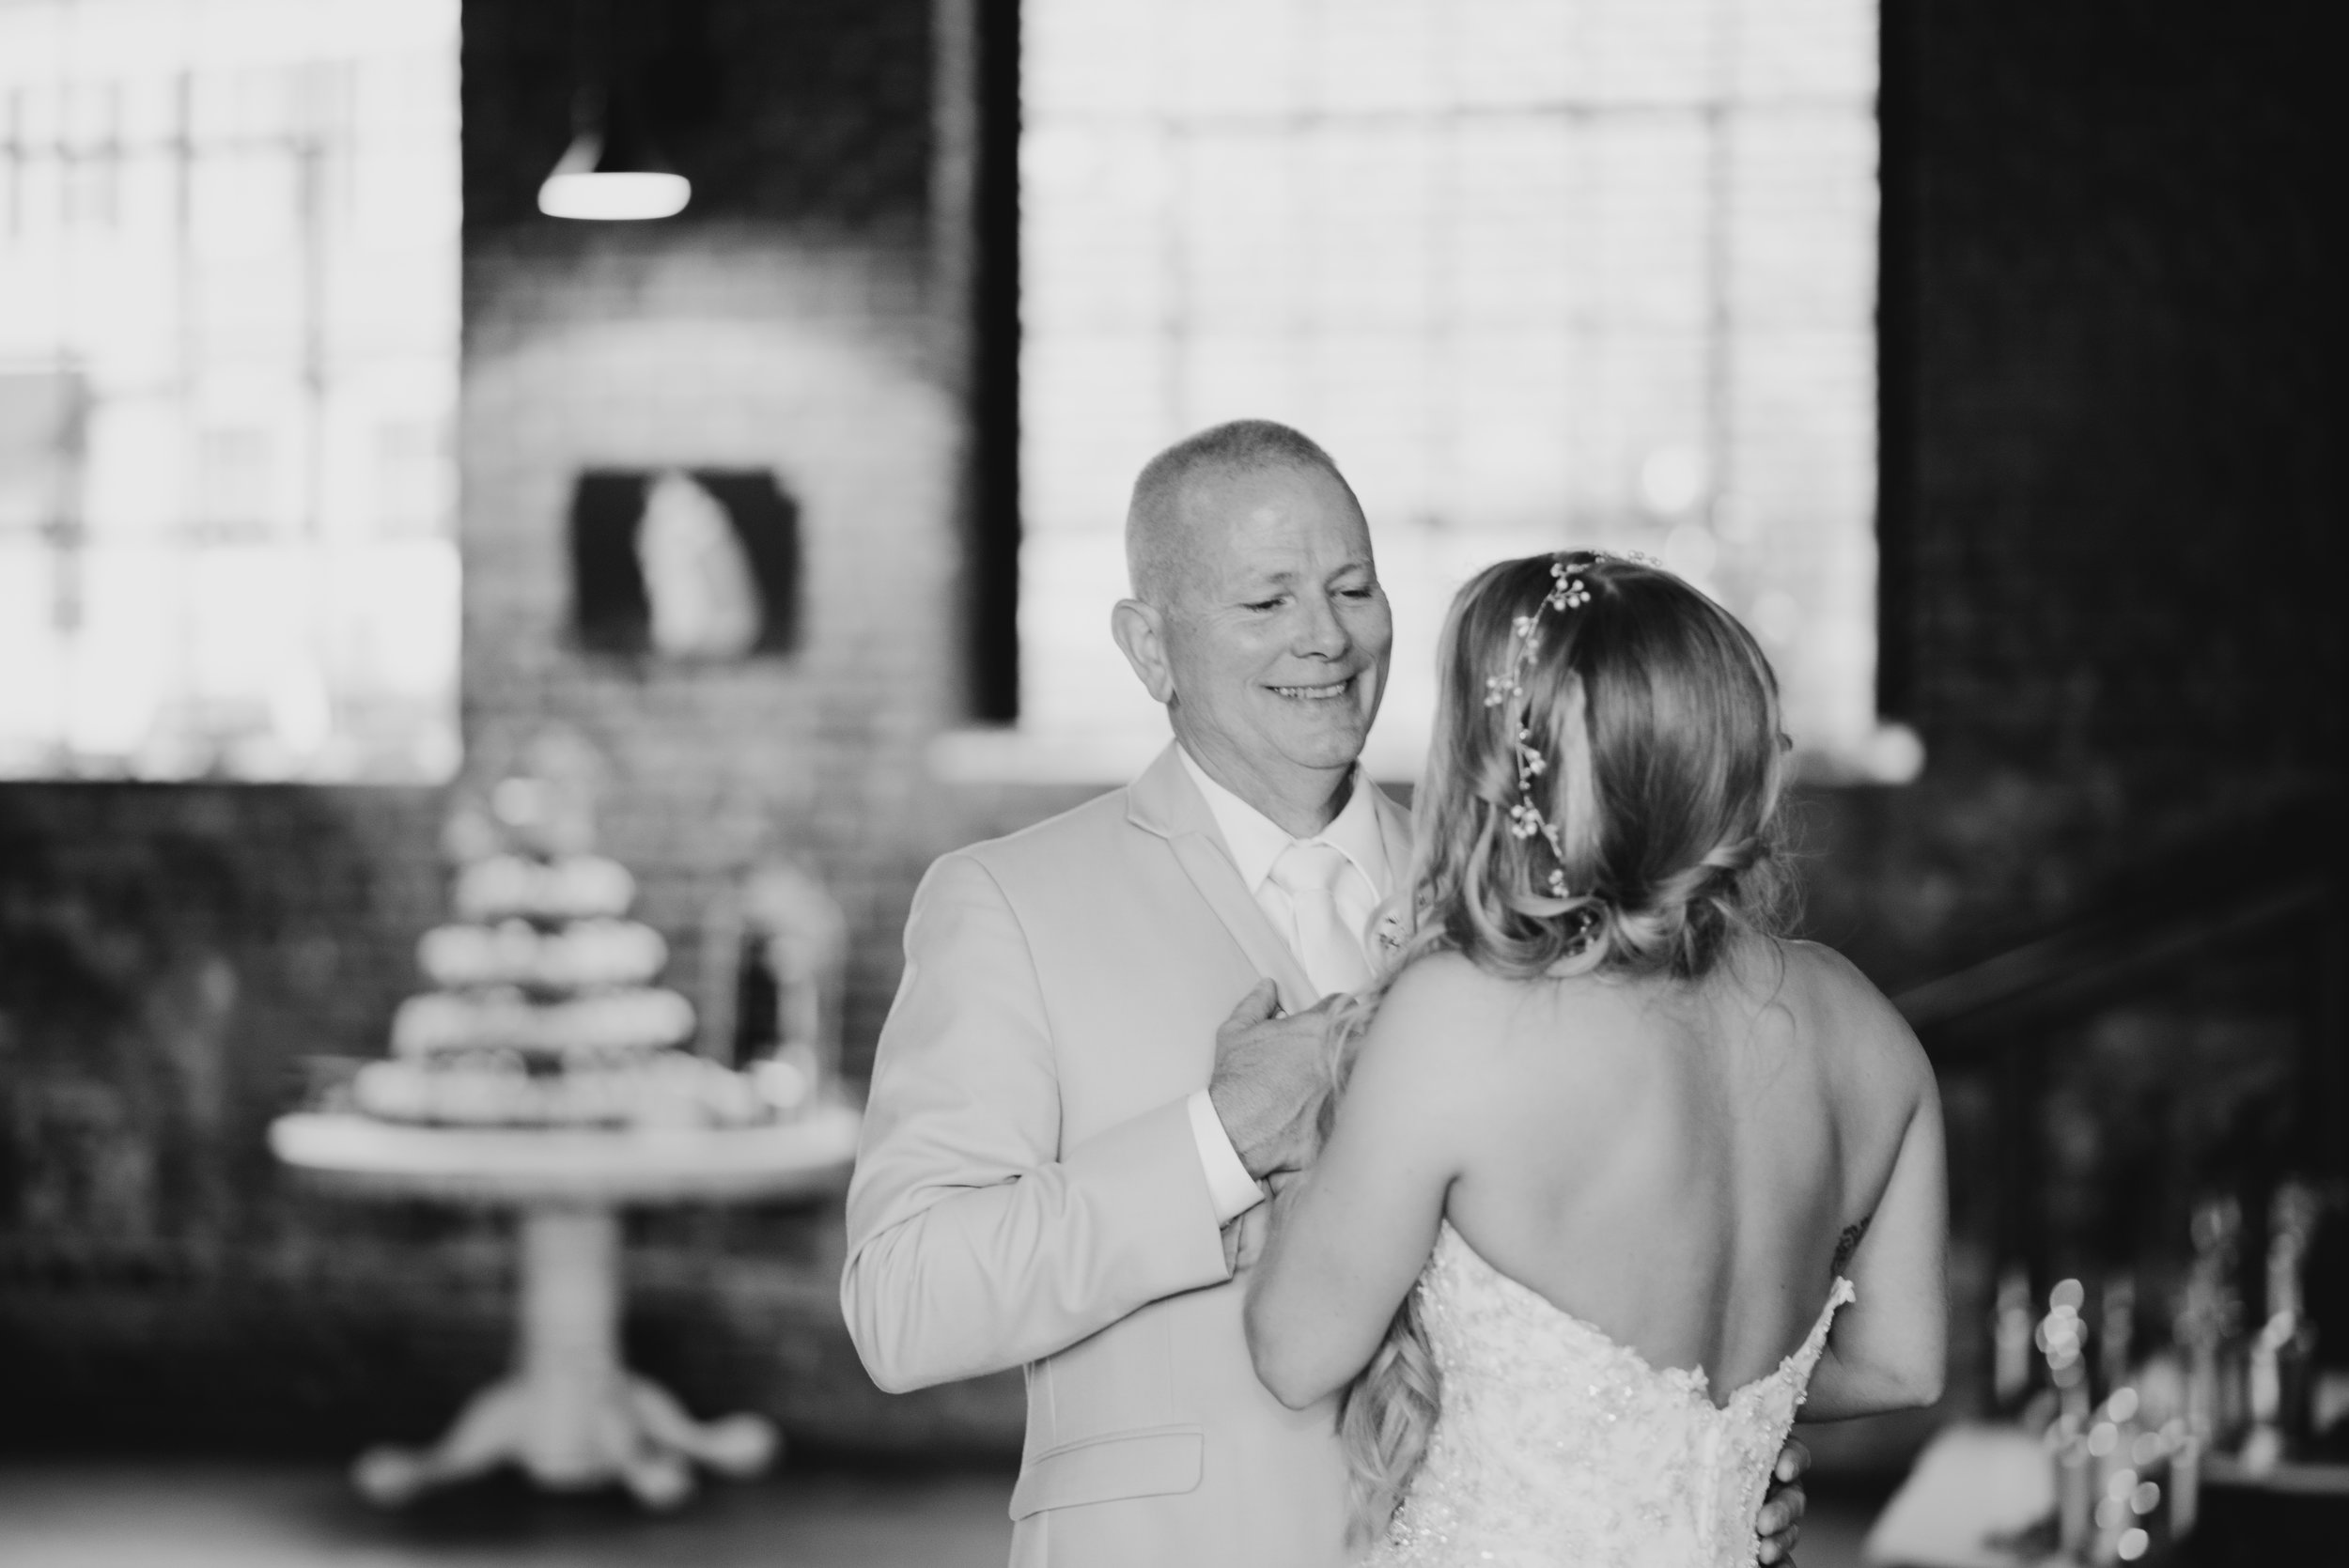 bride and her father dance at wedding reception at the Inn at the Old Silk Mill